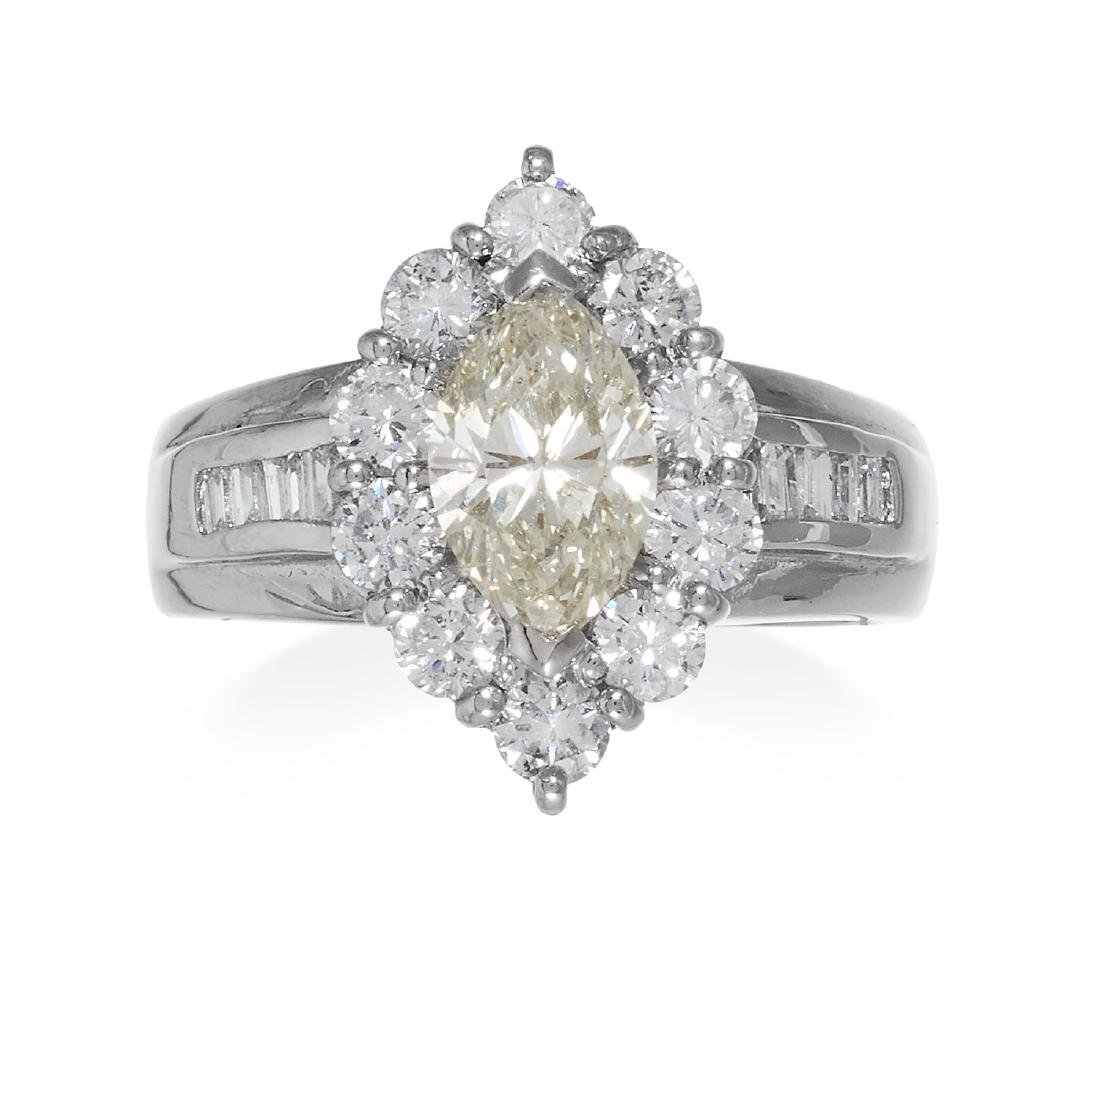 A DIAMOND DRESS RING in platinum, comprising of a